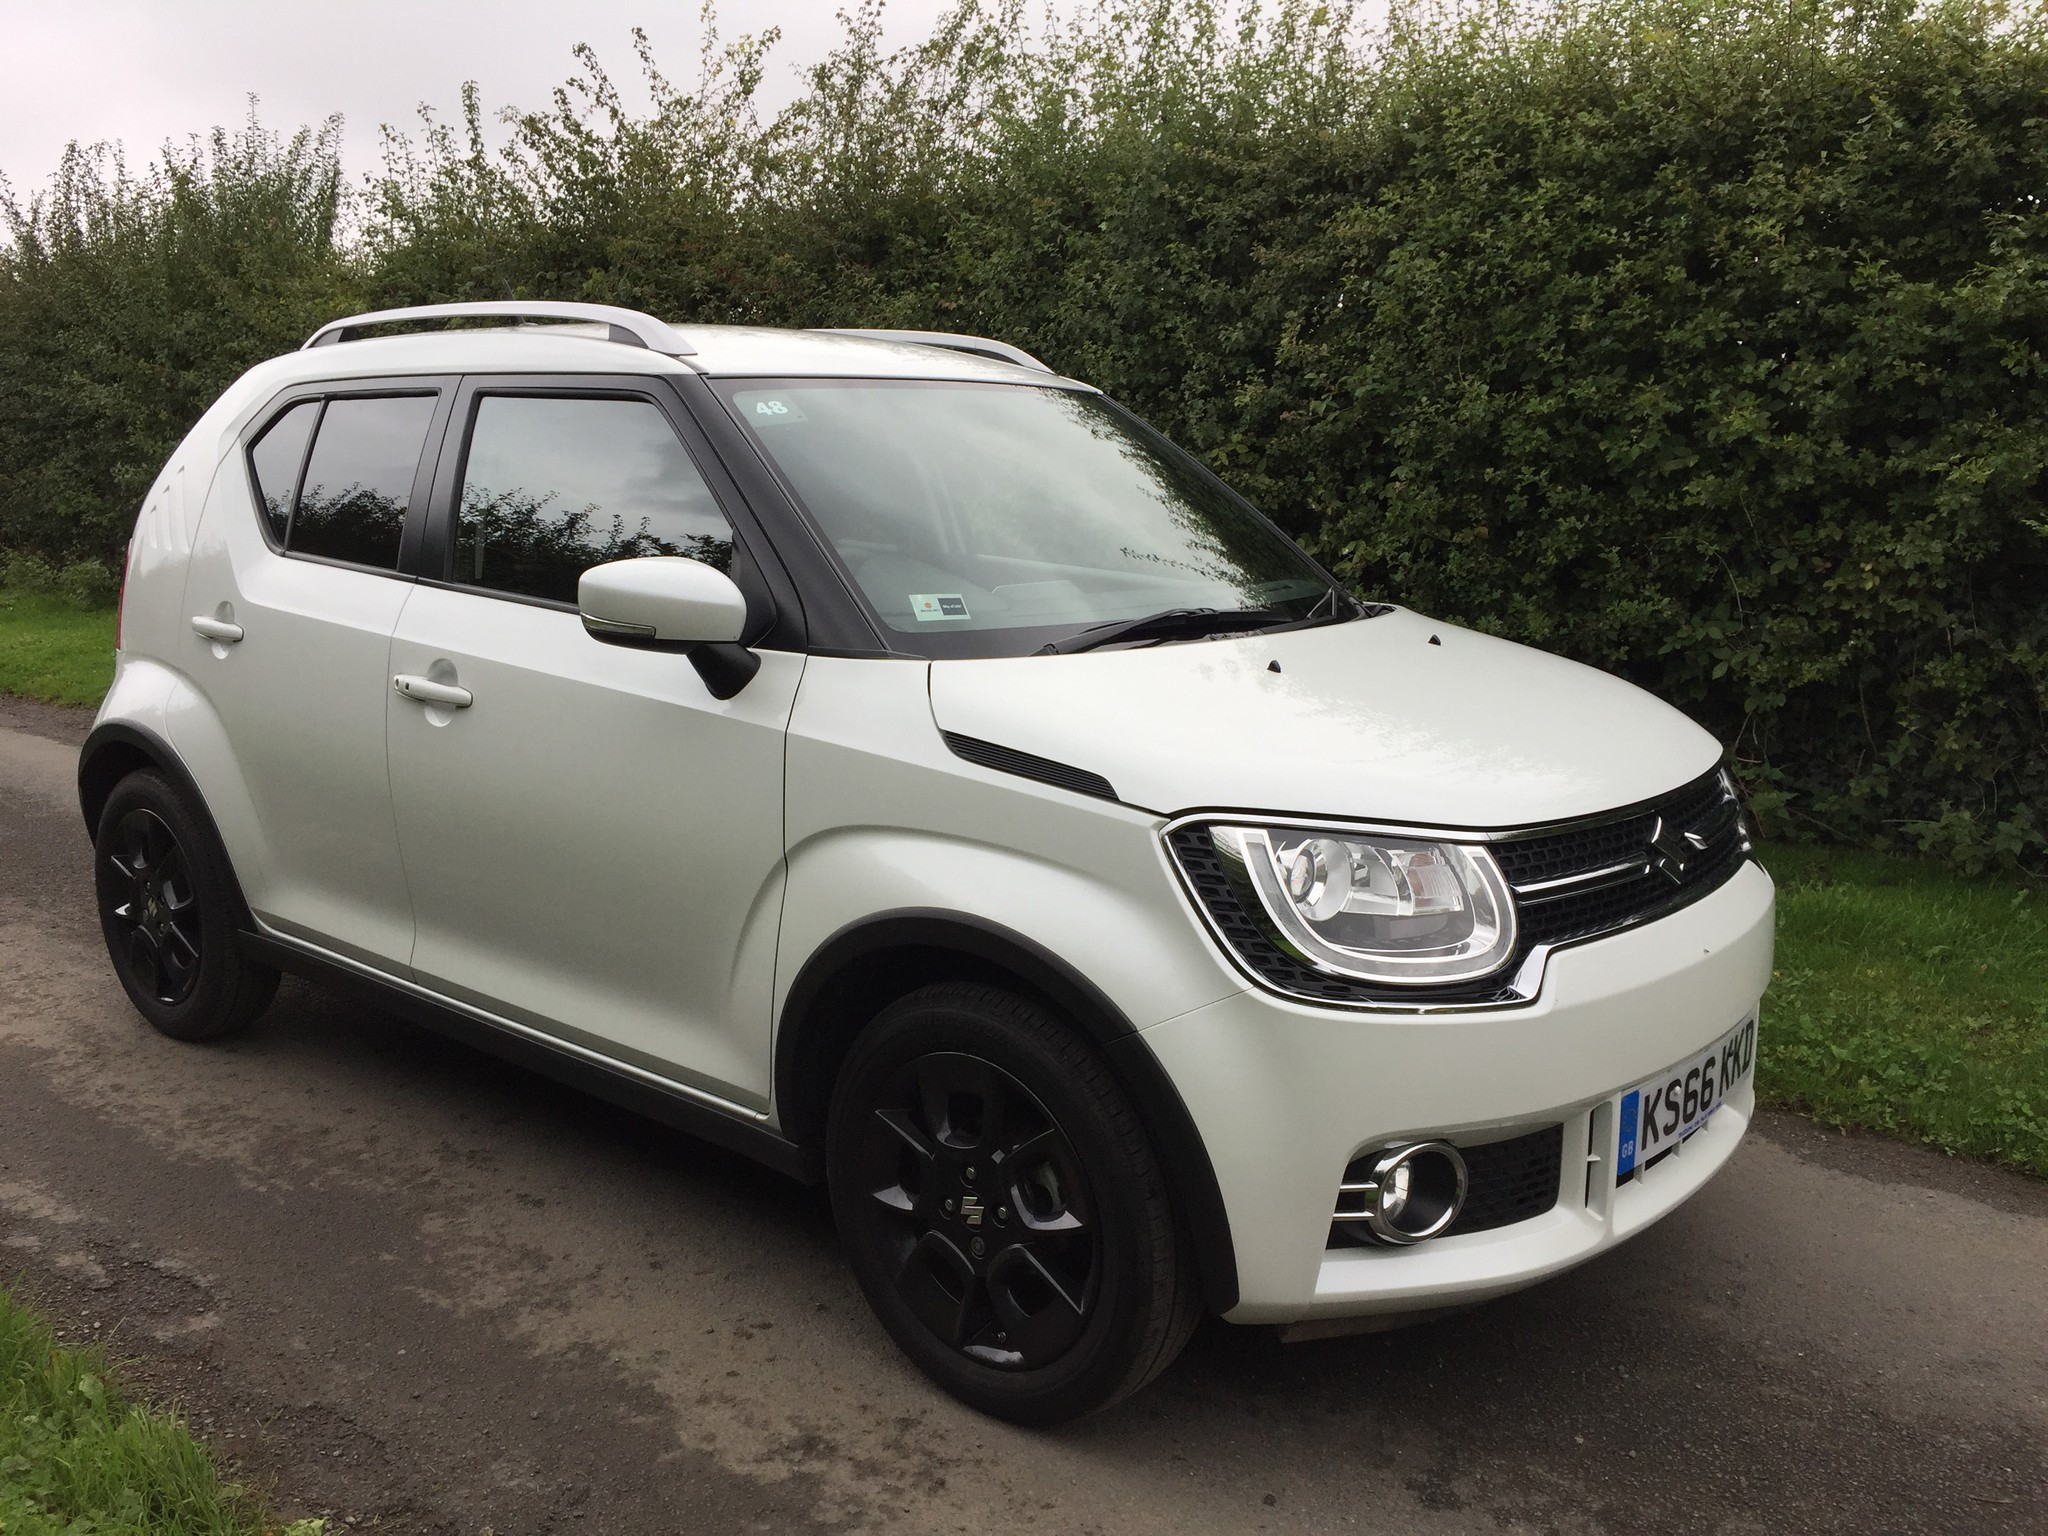 2017 Northern Car of the Year - Suzuki Ignis takes top spot